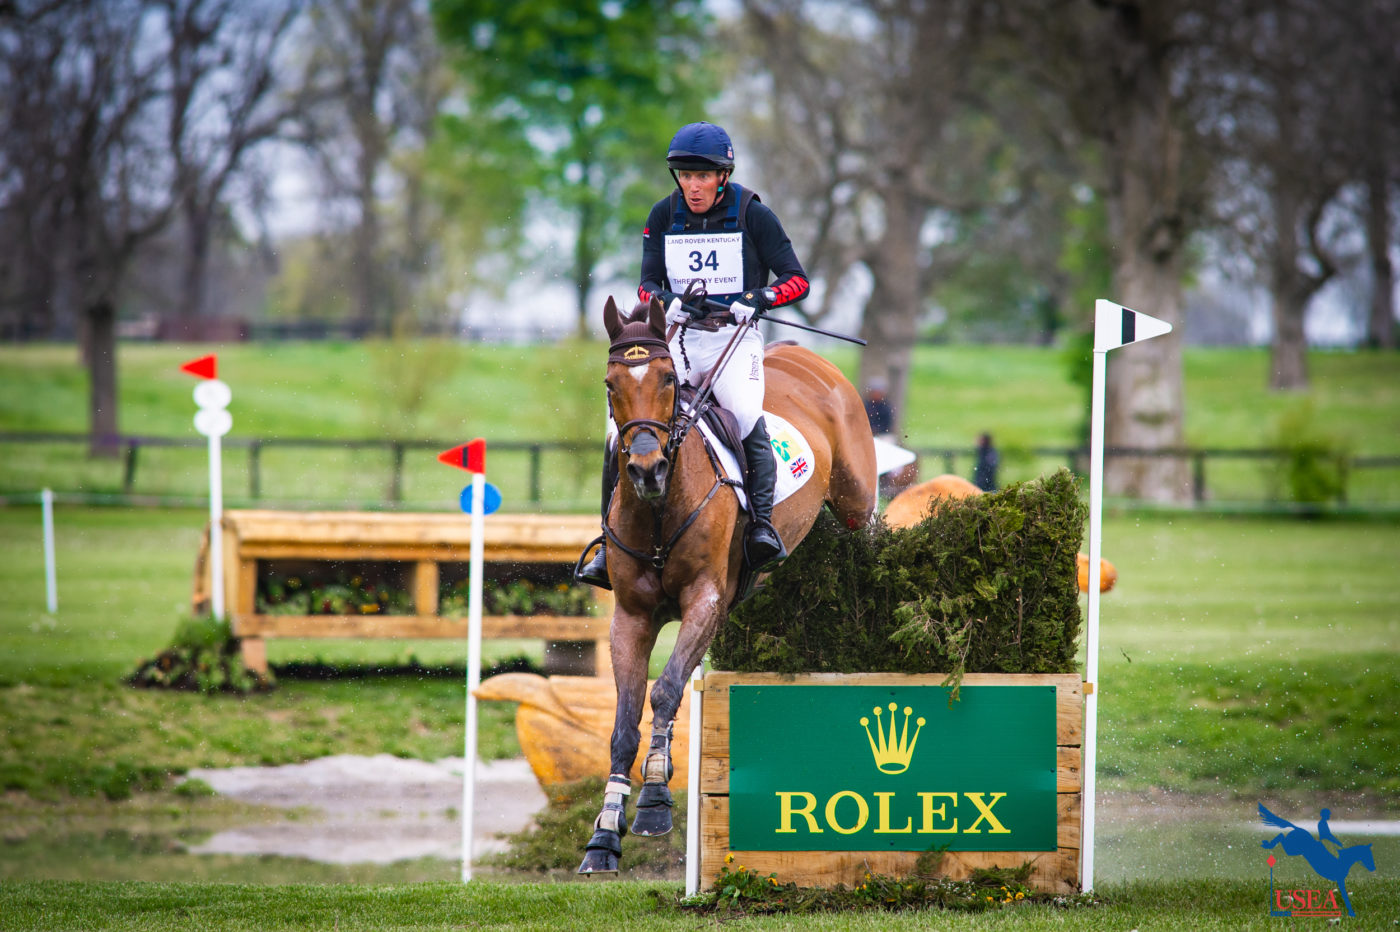 CCI5*-L - 8th - Oliver Townend and Cooley Master Class. Erin Gilmore Photo.